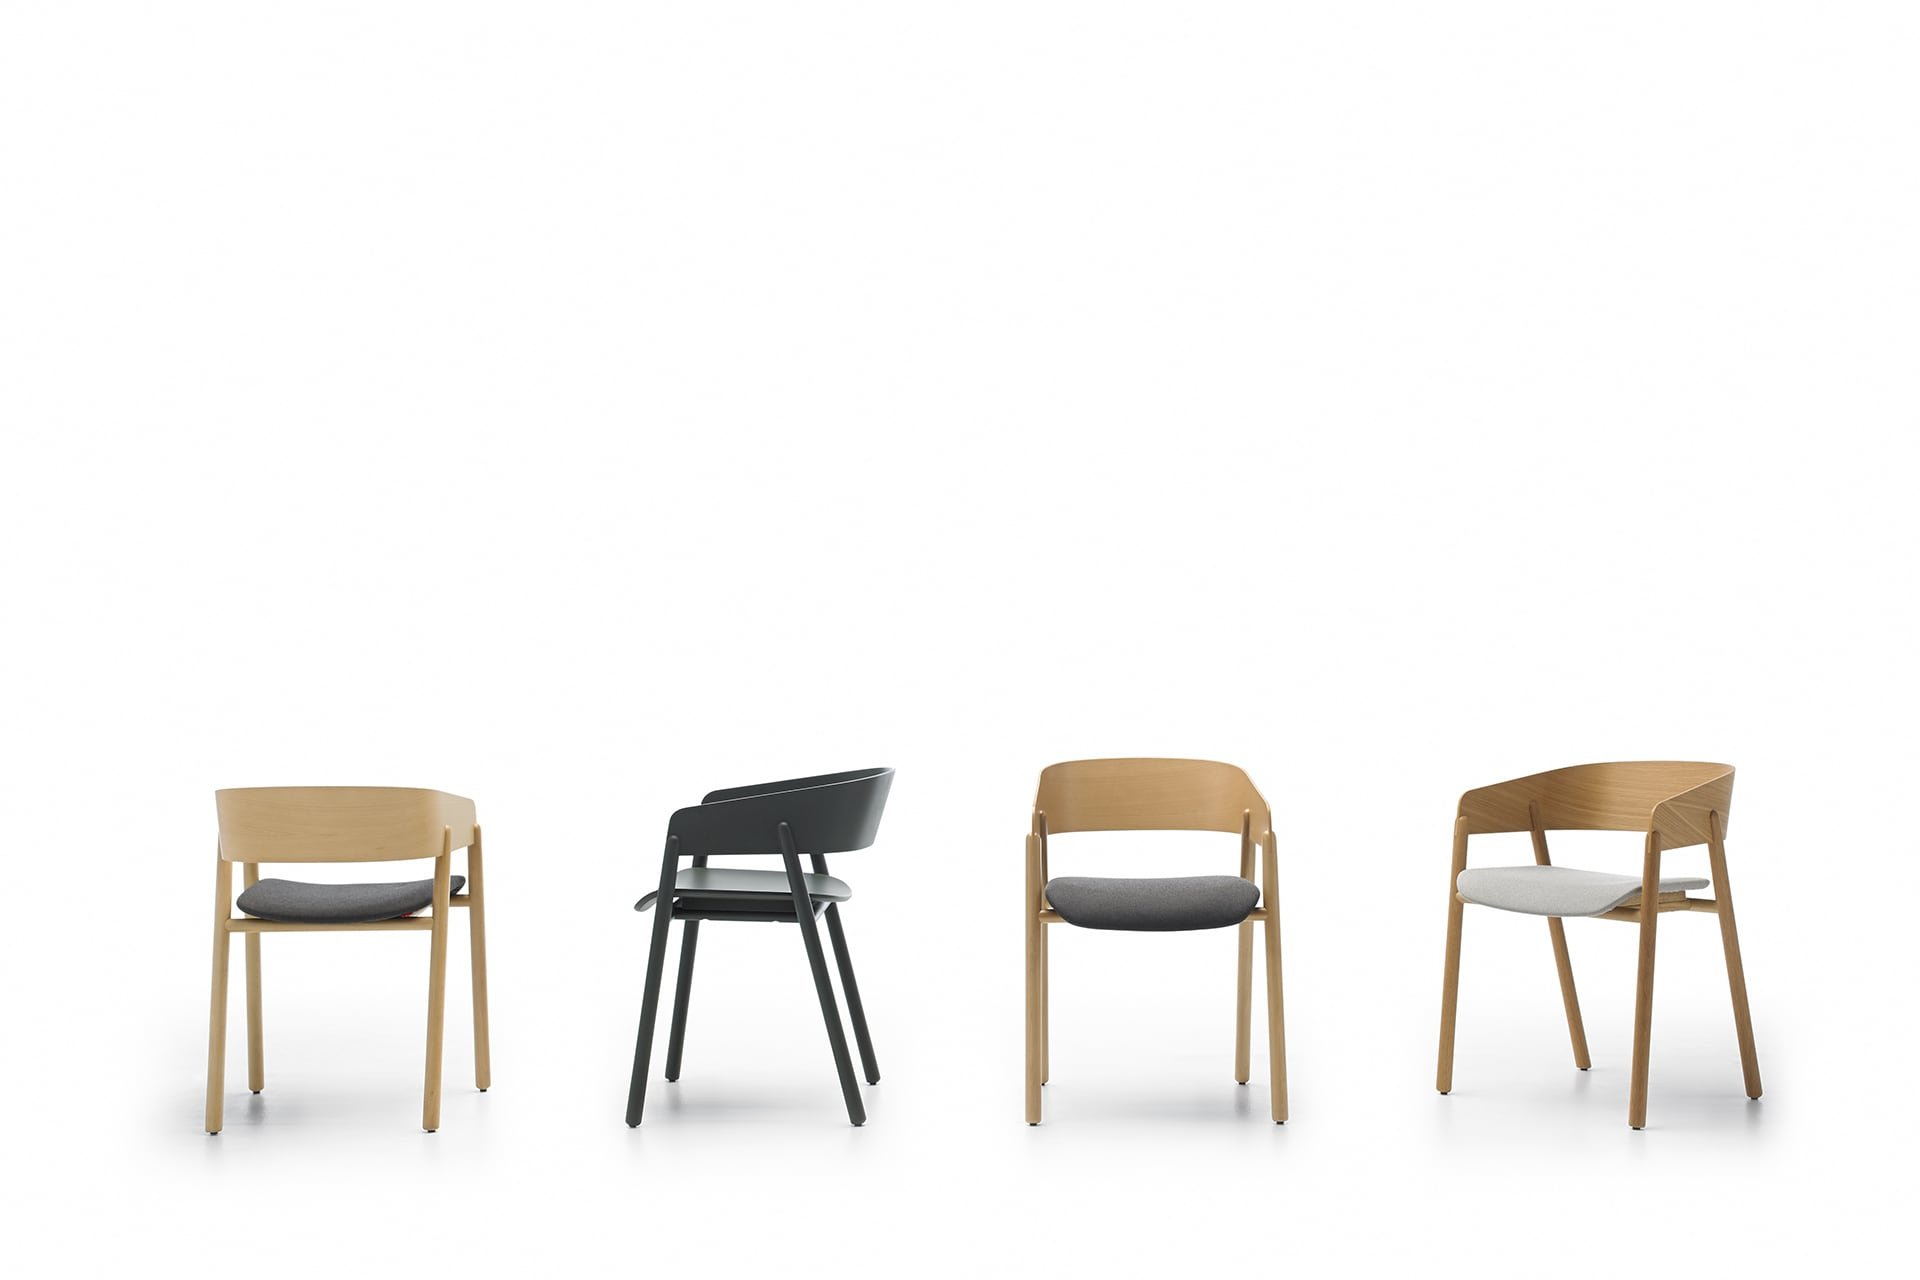 Mava Dining Chair from Punt Mobles, designed by Stephanie Jasny